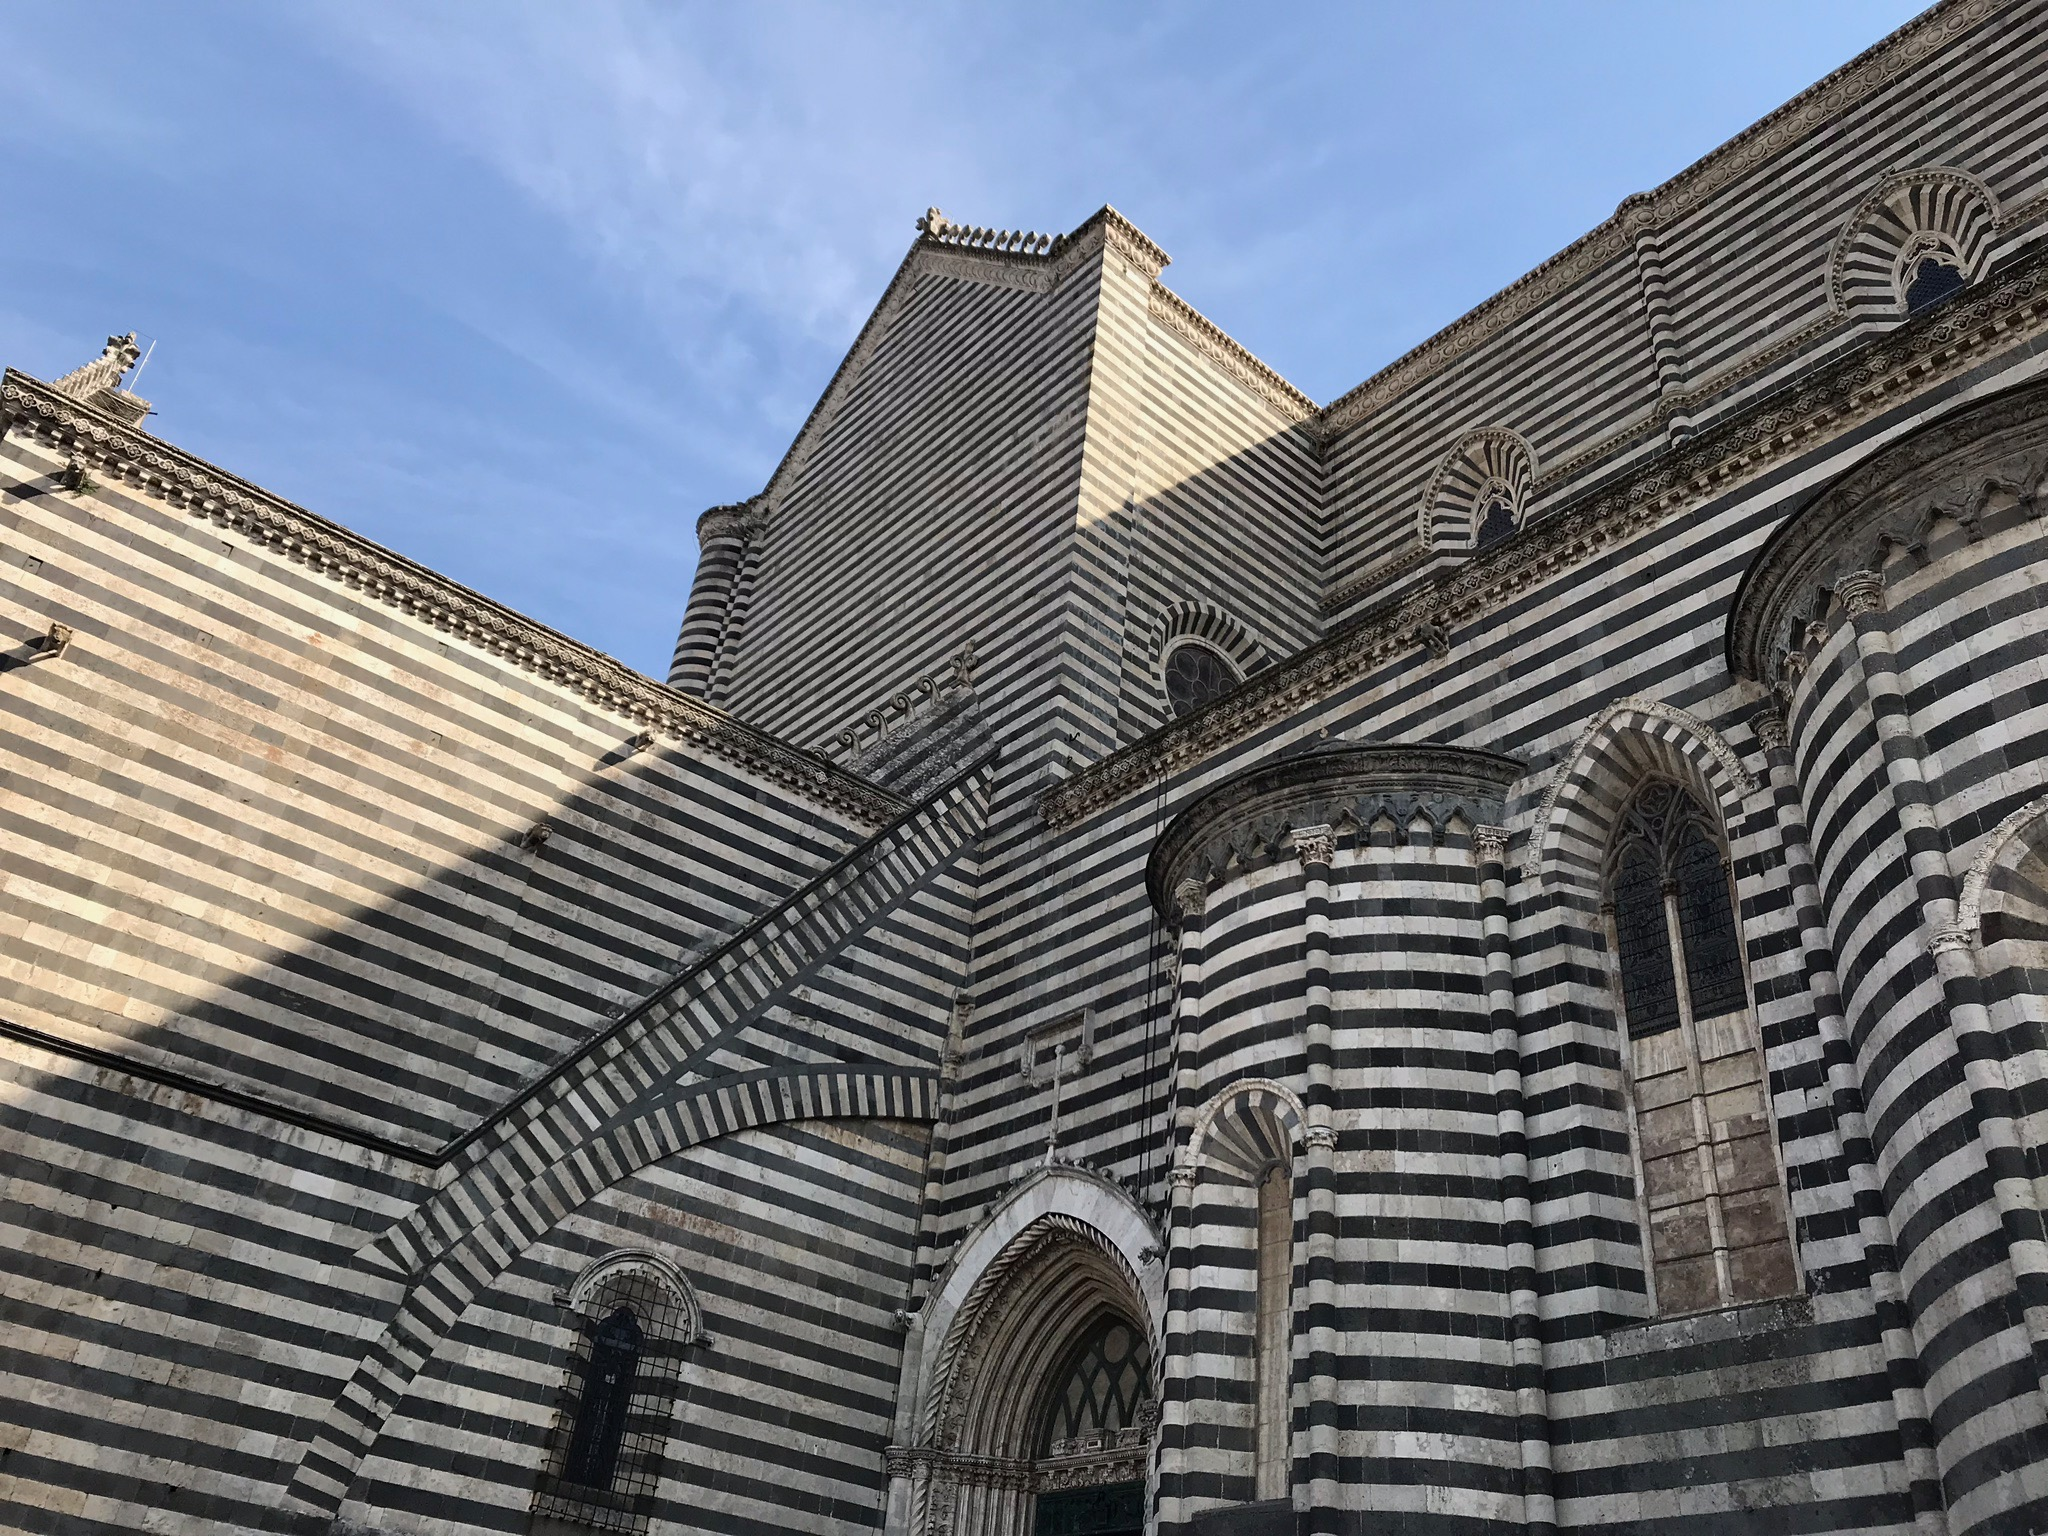 Pattern on the Orvieto Cathedral